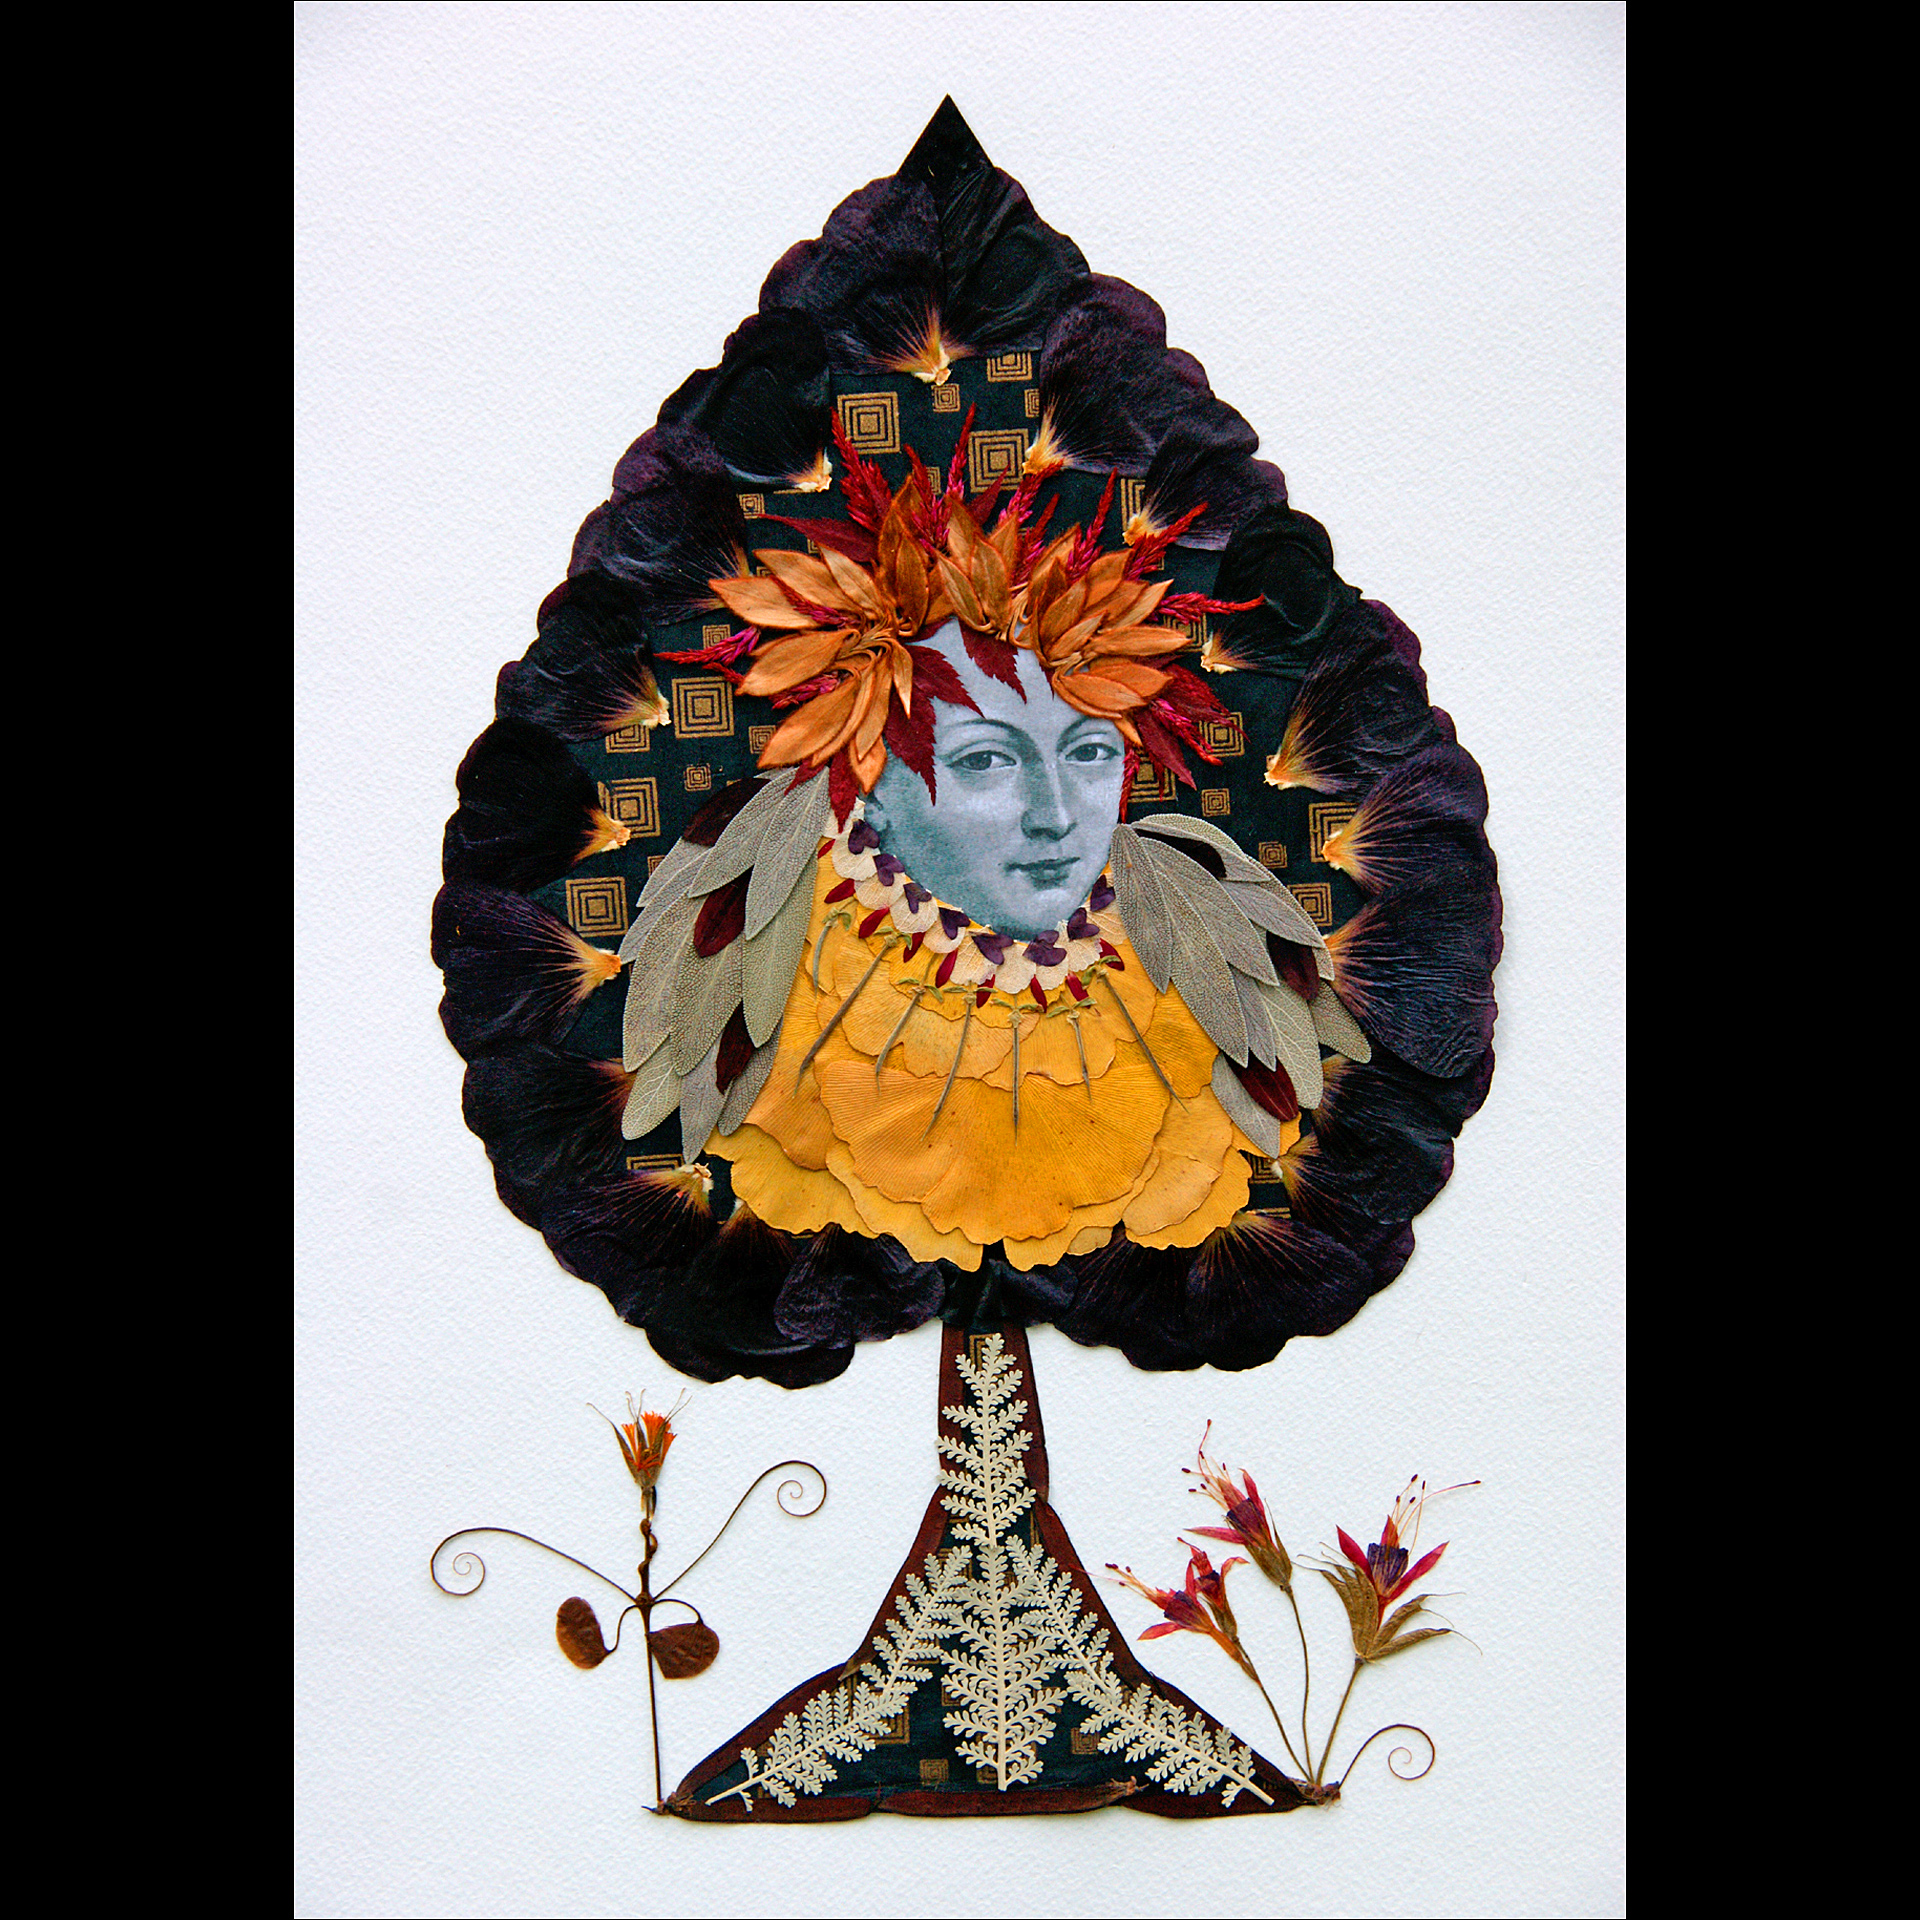 Queen of Spades    Primary Botanicals: Black hollyhock, celosia, ginkgo, sage, red bud pods, Japanese maple leaves, and sunflower petals.  Winner of the People's Choice Award, Columbia Art League, Columbia, Missouri. 2015.